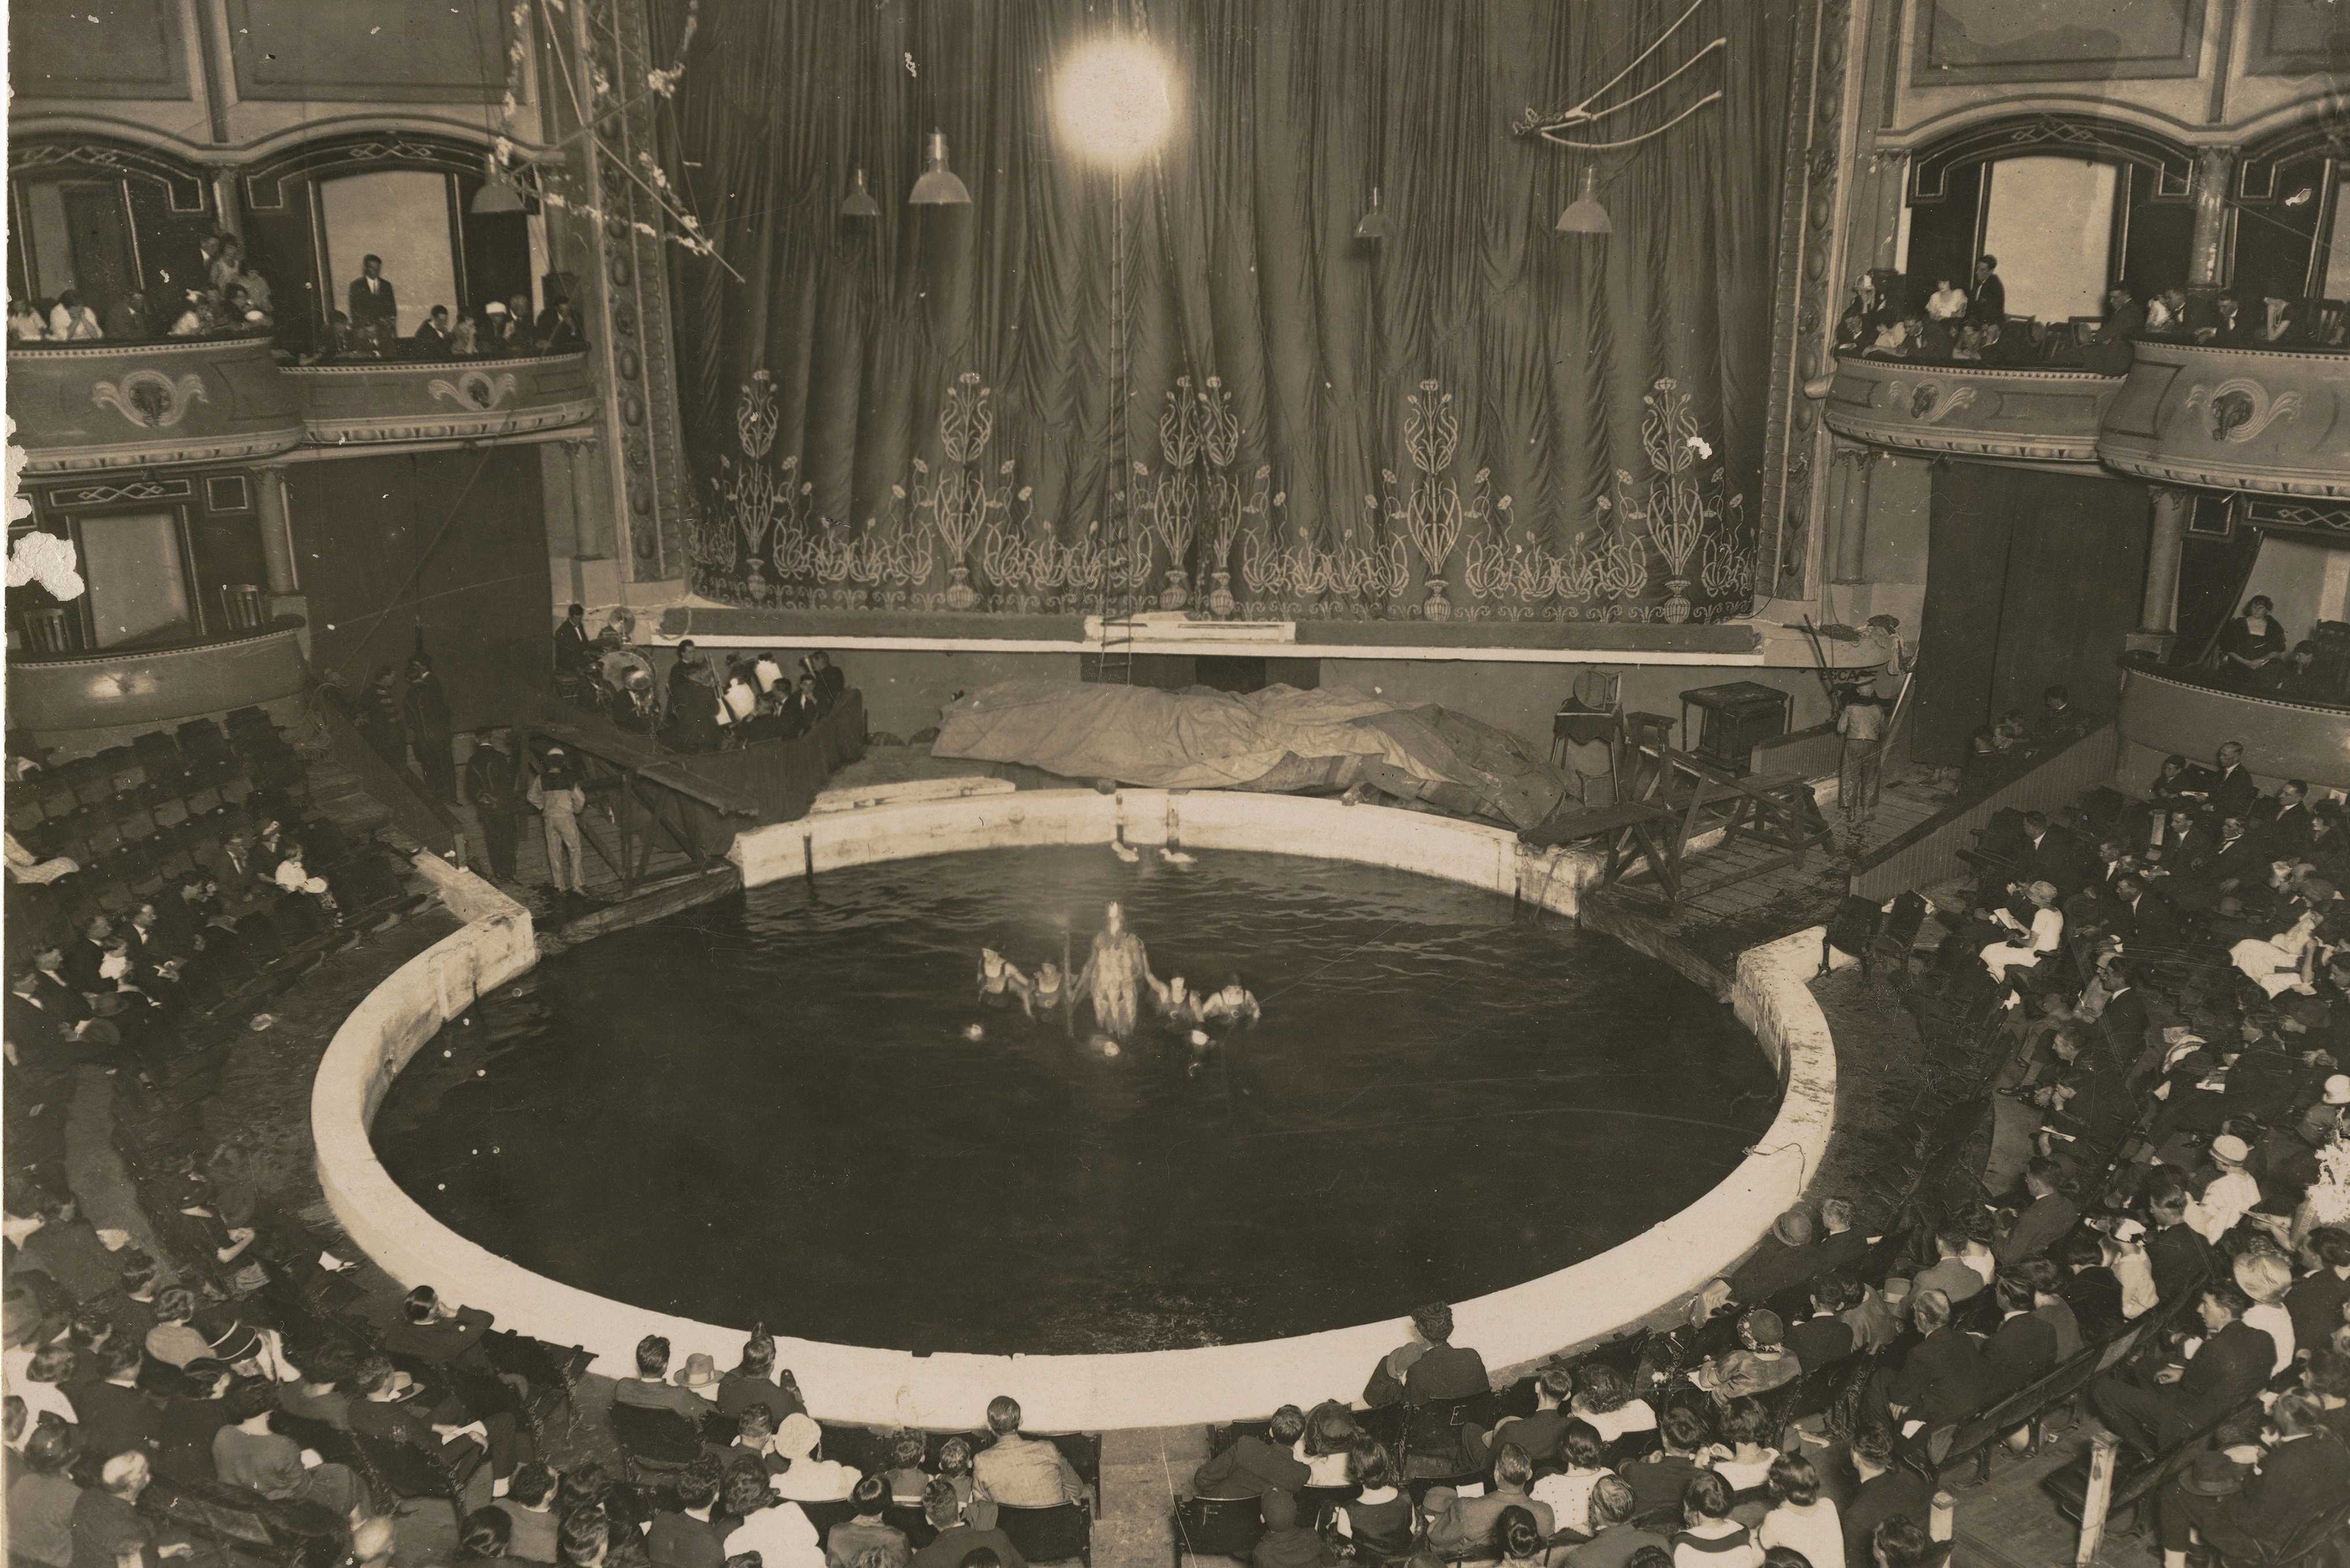 Sydney's Capitol Theatre – a century of entertainment